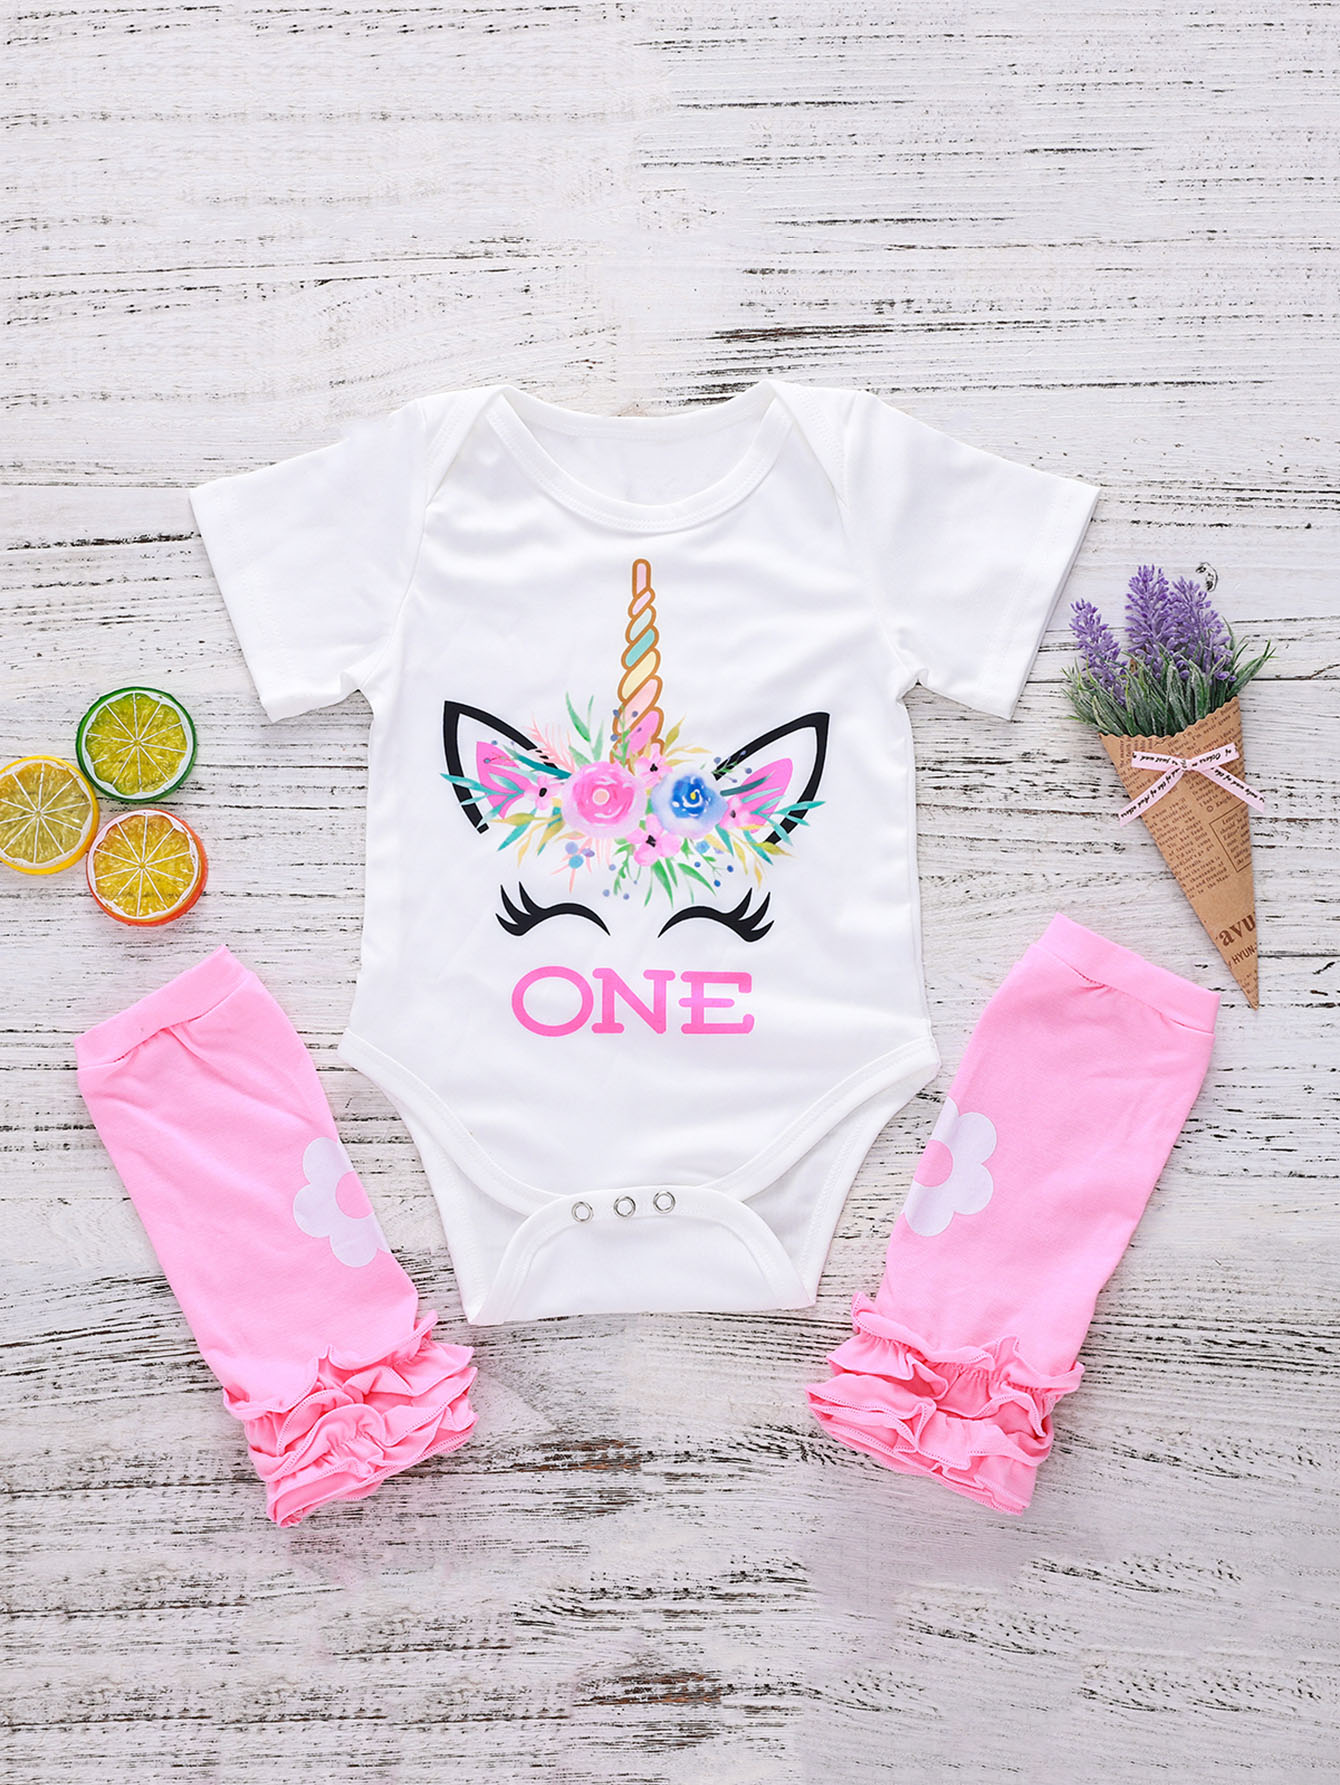 Kids Letter And Cartoon Print Romper With Frill Socks игровой ноутбук hp pavilion 15 cc505ur i5 7200u 2500mhz 6gb 1tb 128gb ssd 15 6 fhd ips nv 940mx 2gb